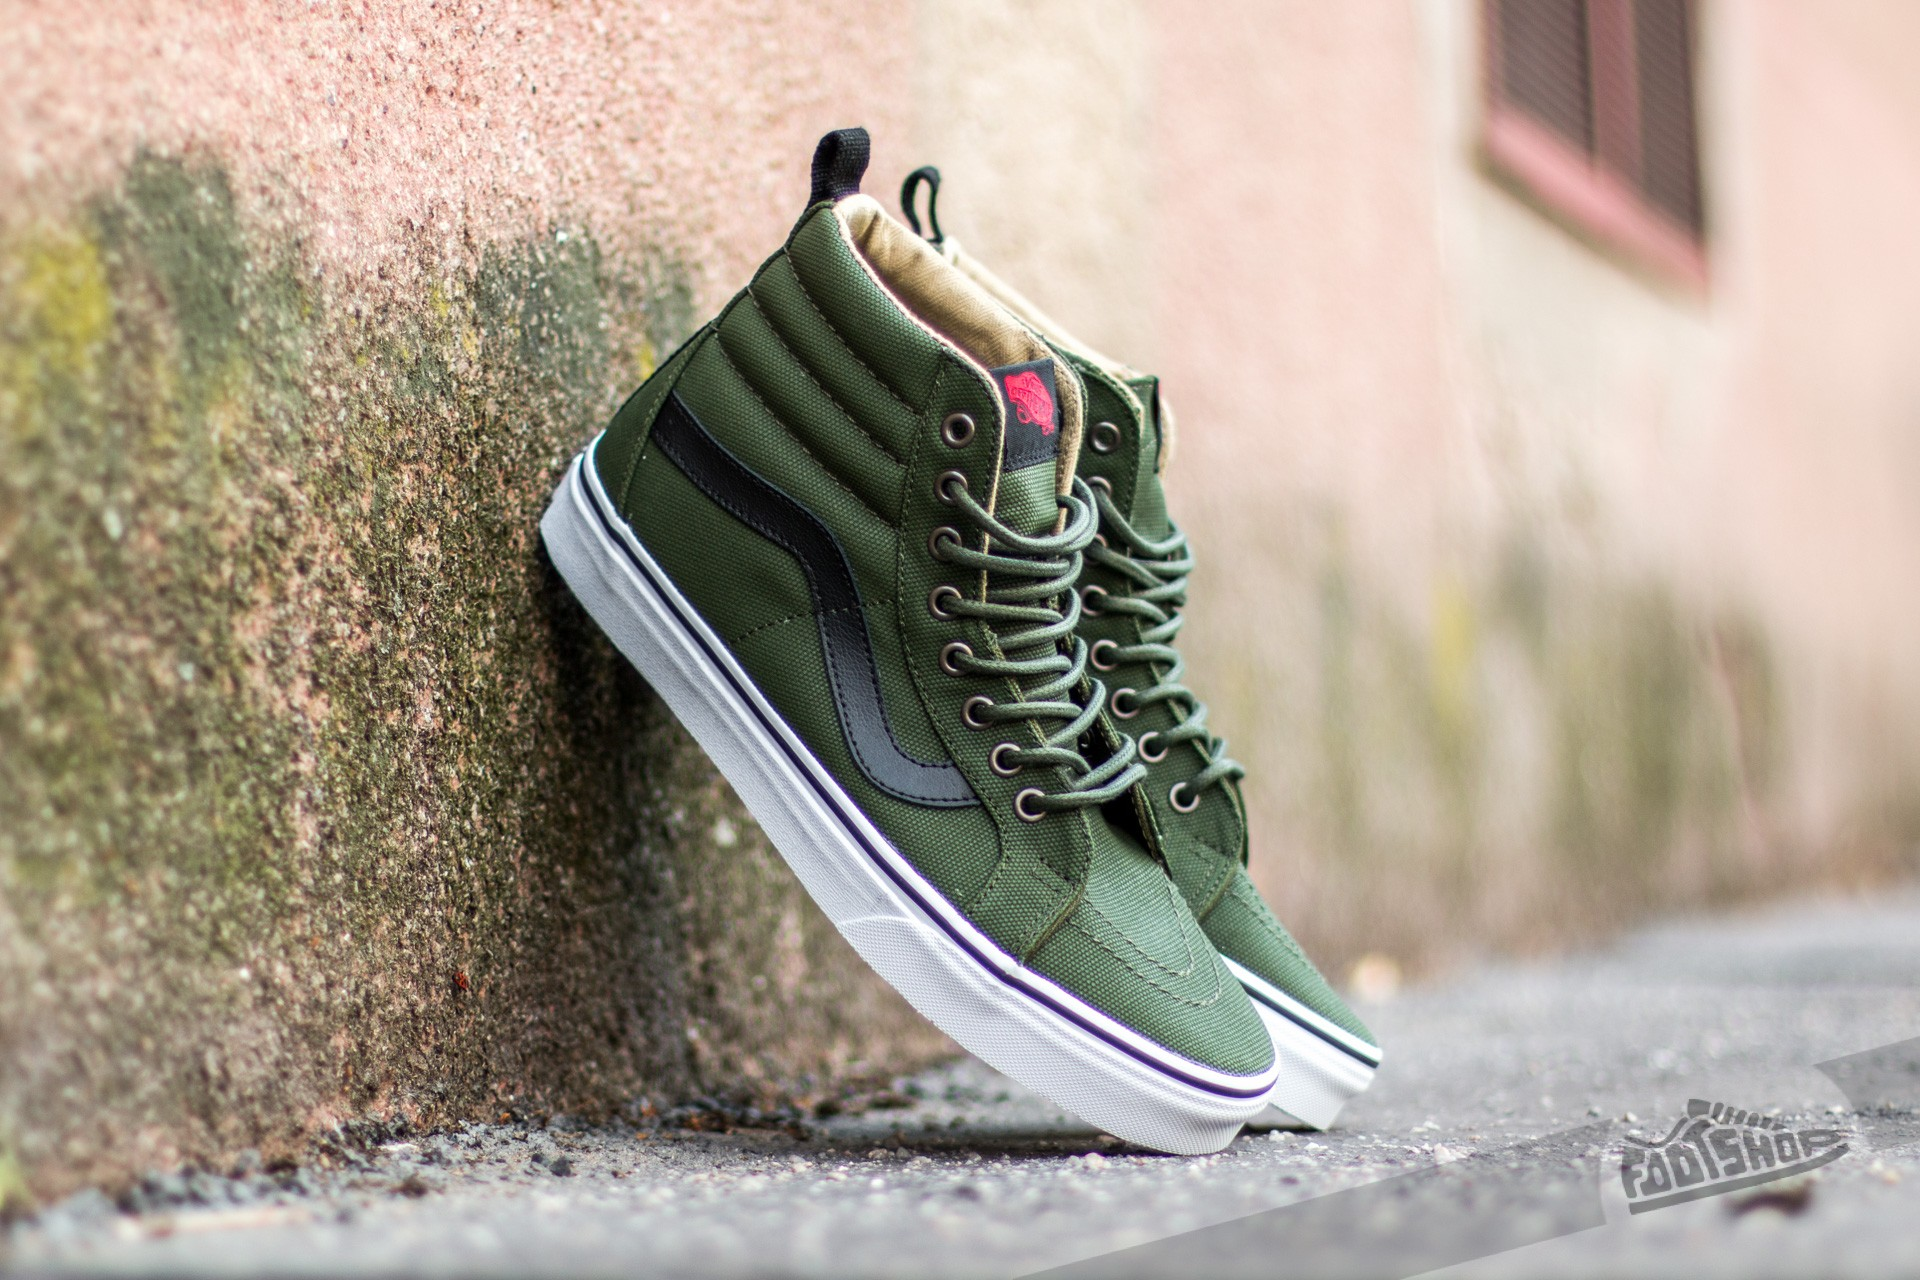 37697a089c1 Vans Sk8-Hi Reissue PT (Military Twill) Rifle Green